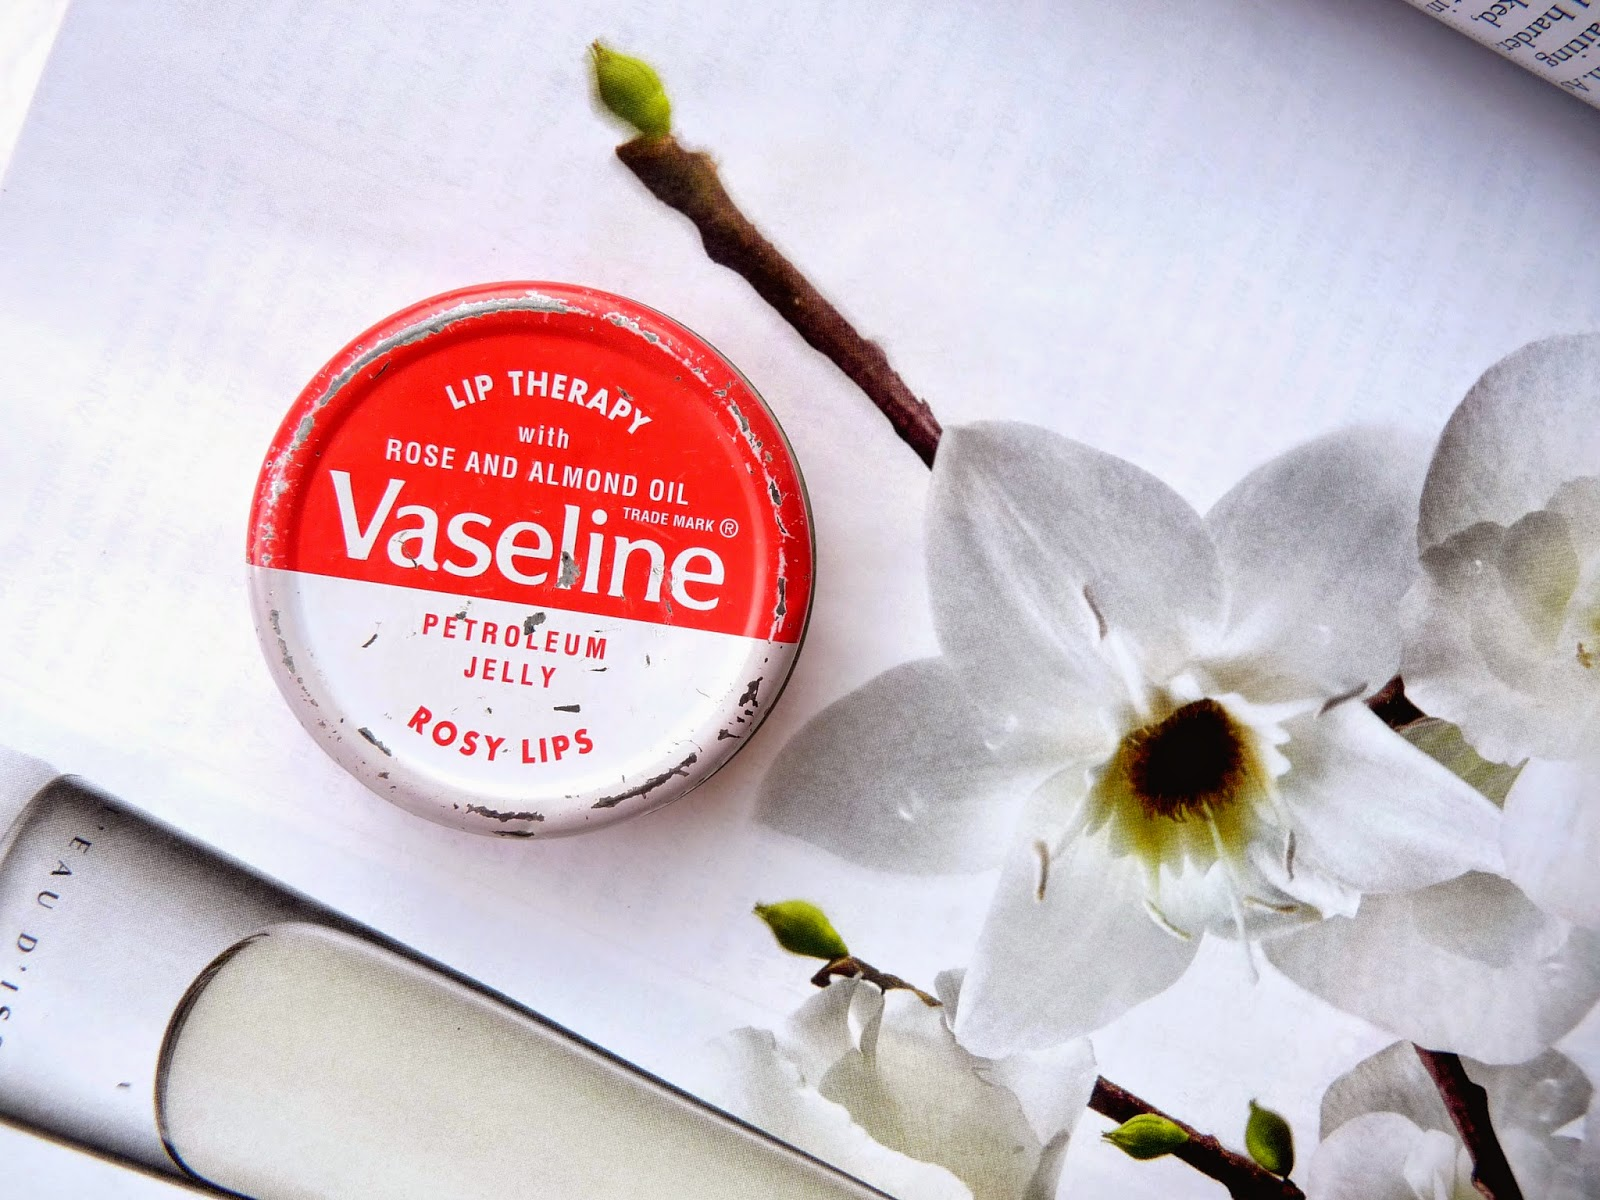 10 uses for Vaseline